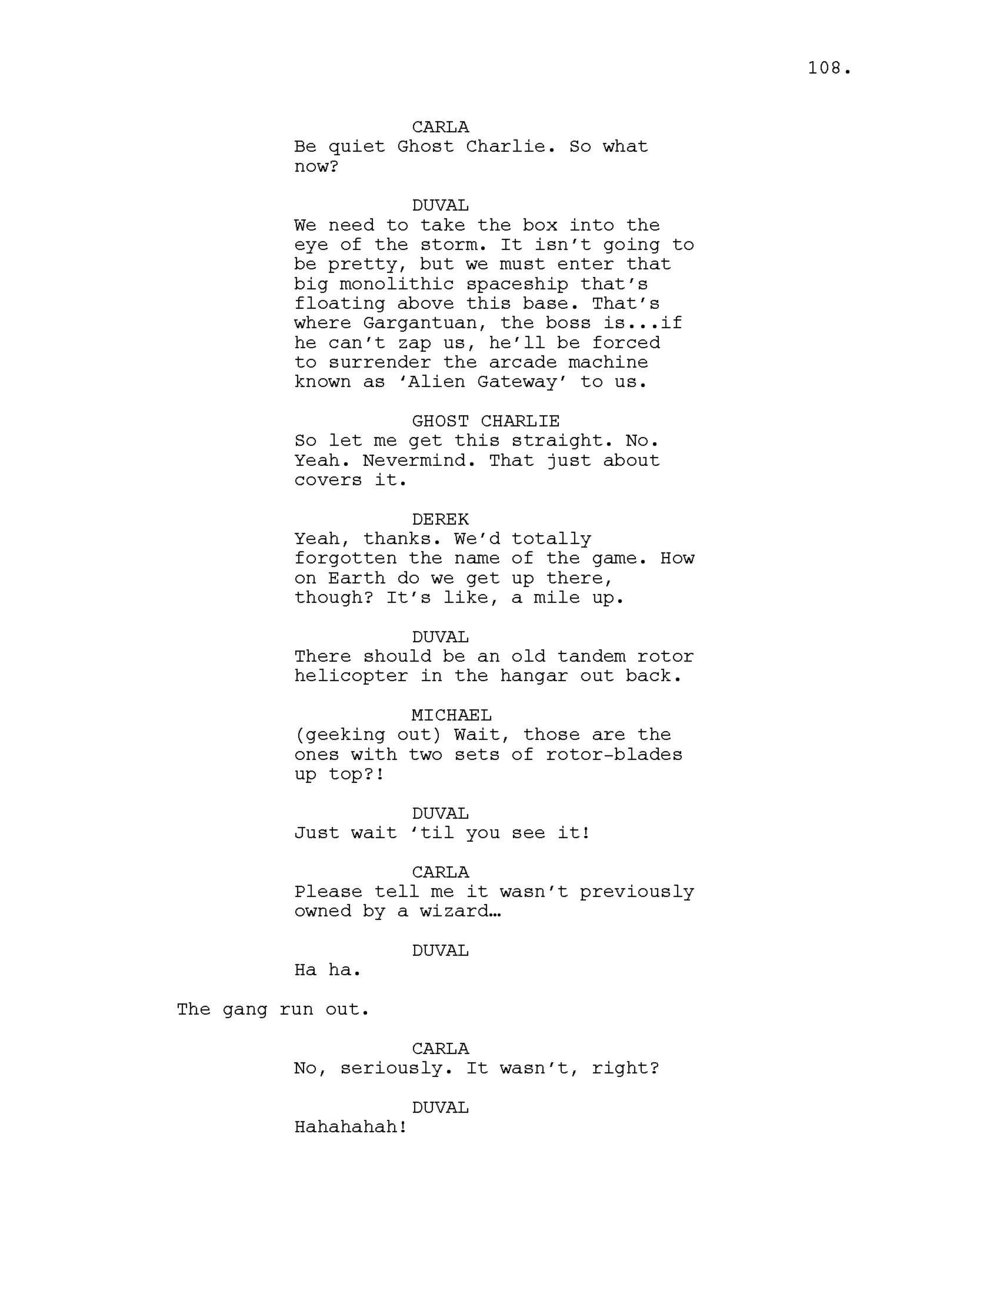 INVISIBLE WORLD SCRIPT_Page_109.jpg